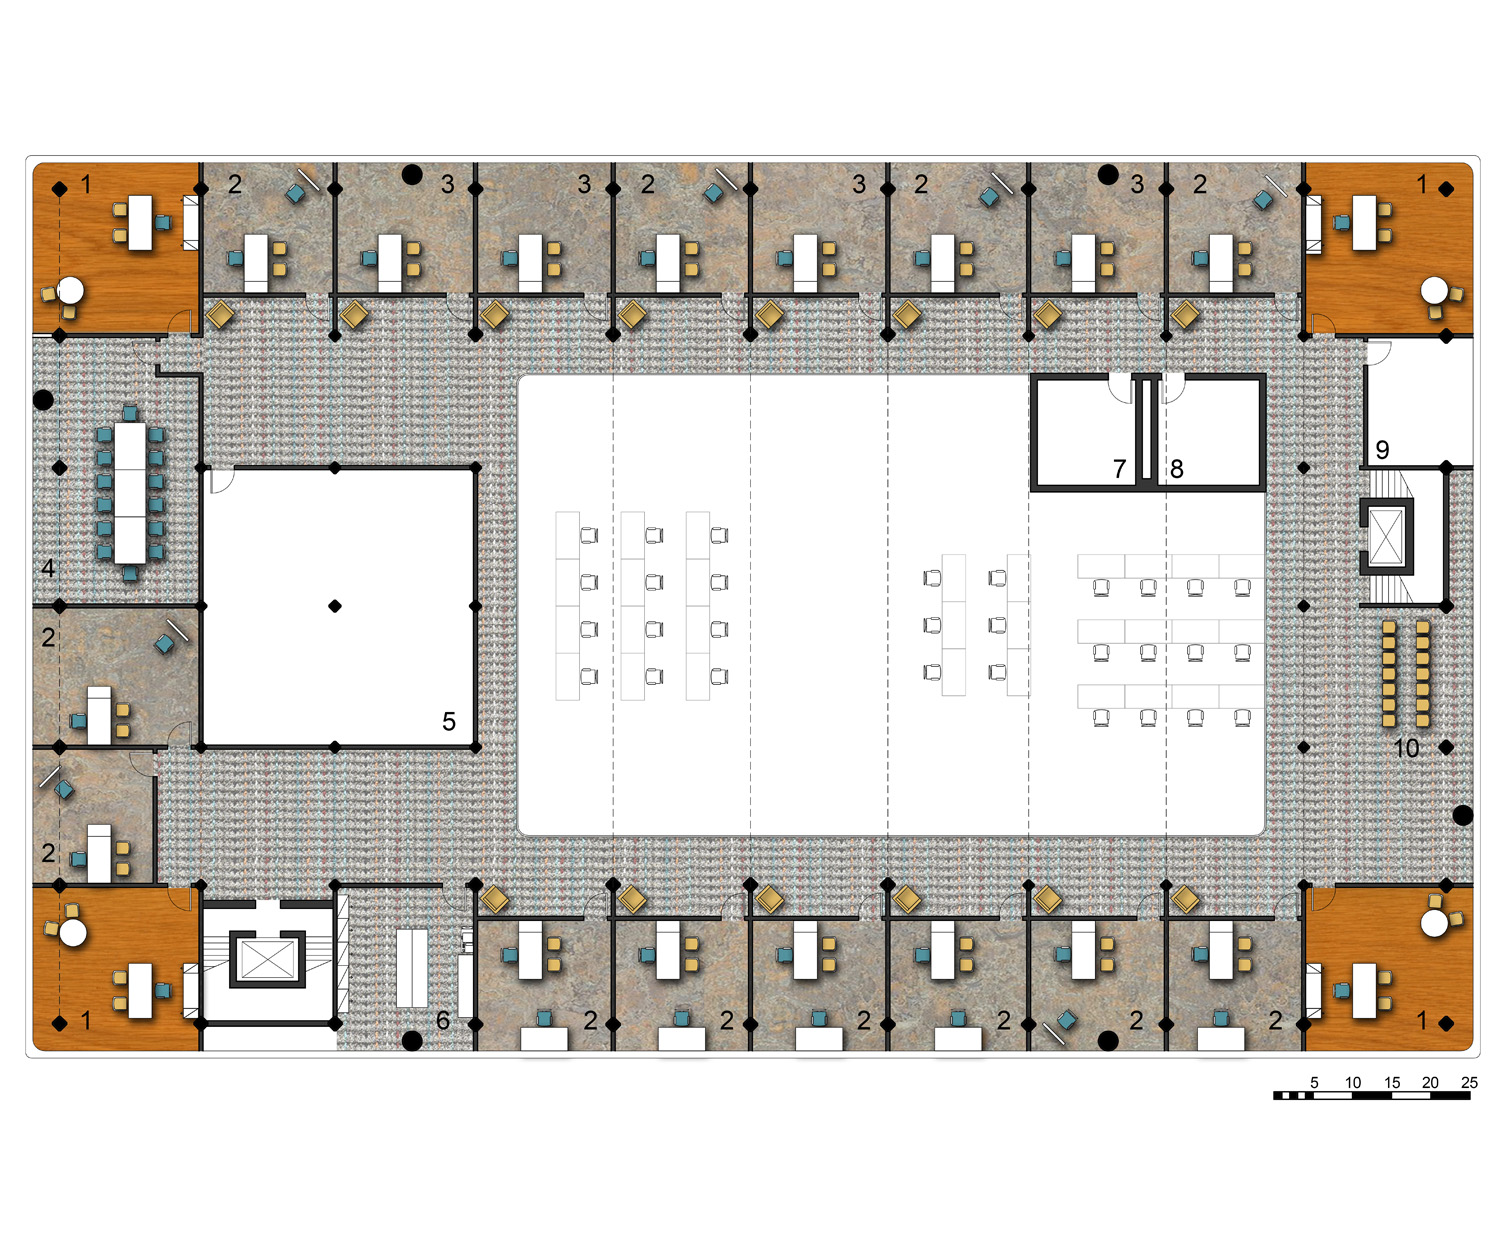 Third Level Floor Plan   1.Administrative Offices   2.Art Therapy Rooms   3.Music Therapy Rooms   4.Conference Rooms   5.Art Supply Storage   6.Copy Room   7.Men's Locker Room   8.Womens' Locker Room   9.General Storage   10.Waiting Room